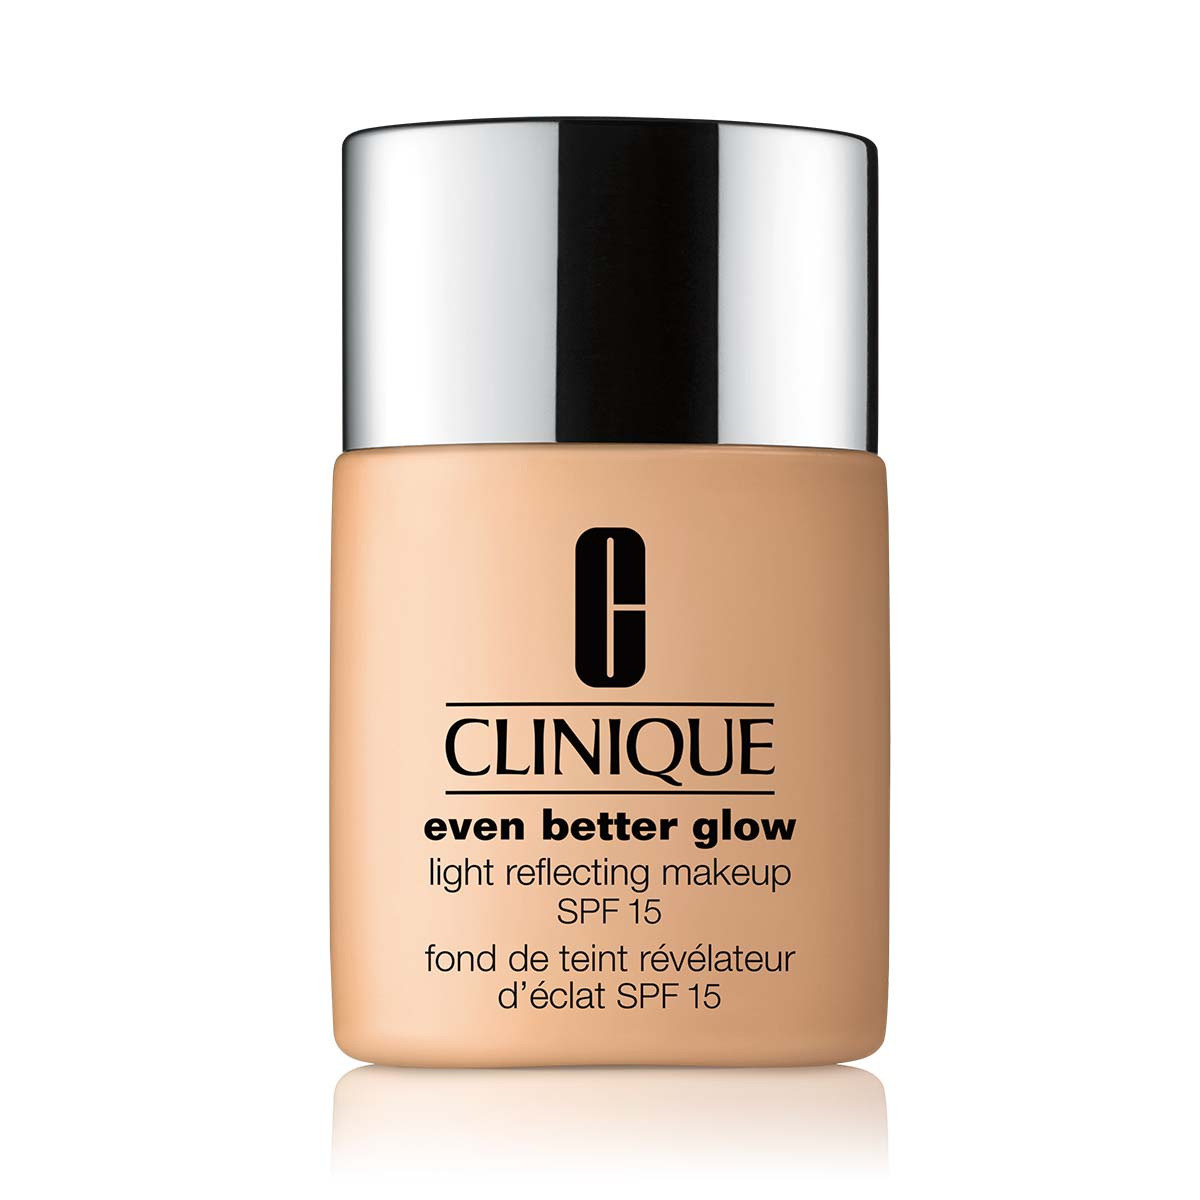 Clinique even better glow - cn 40 cream chamois 30 ml, CN 40 CREAM CHAMOIS, large image number 0